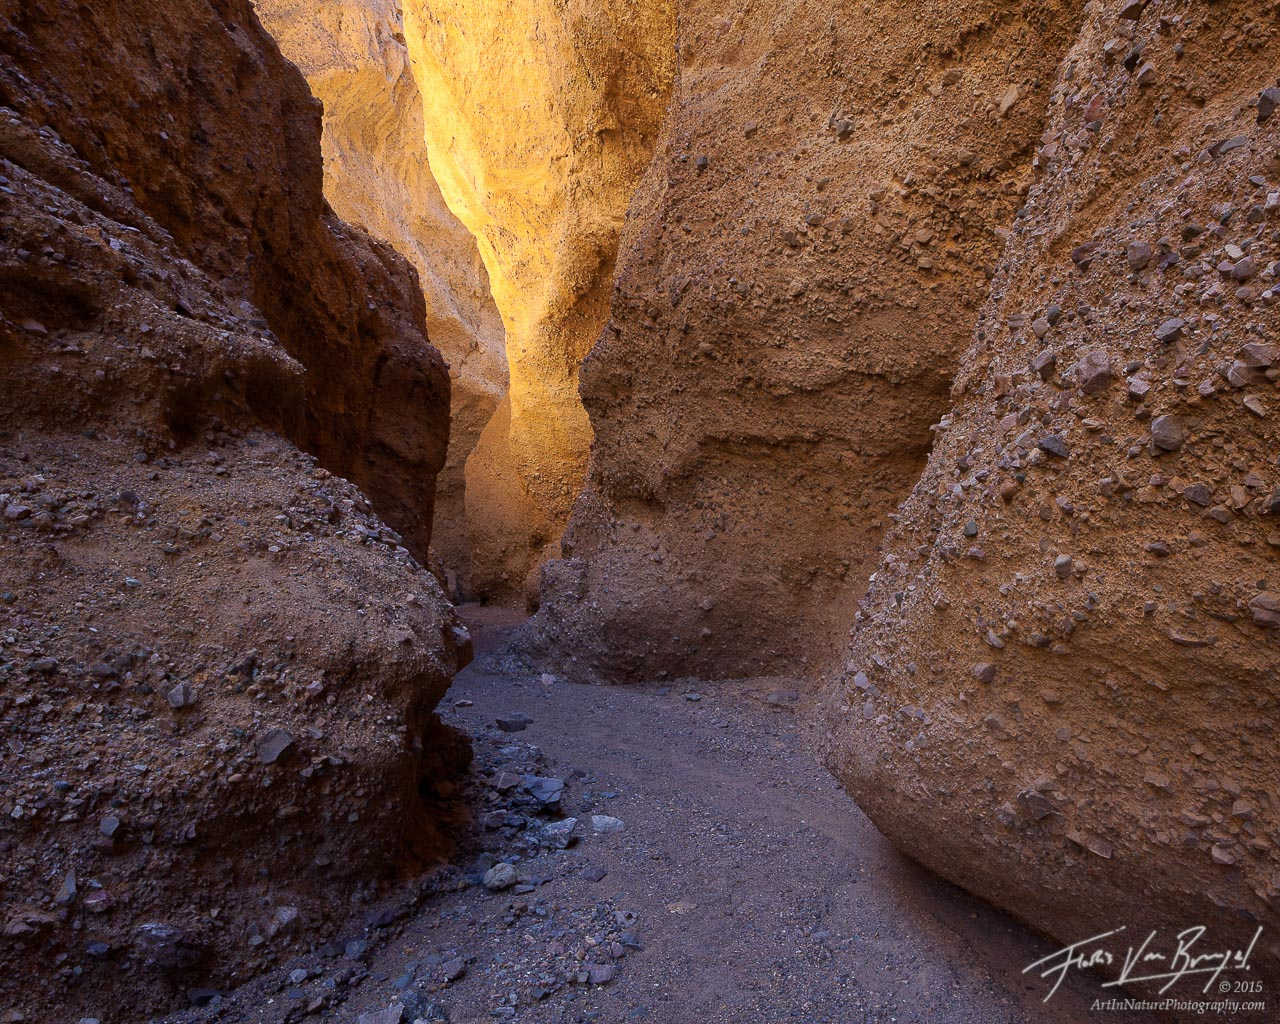 Mud Slot Canyon, Death Valley National Park, California, photo